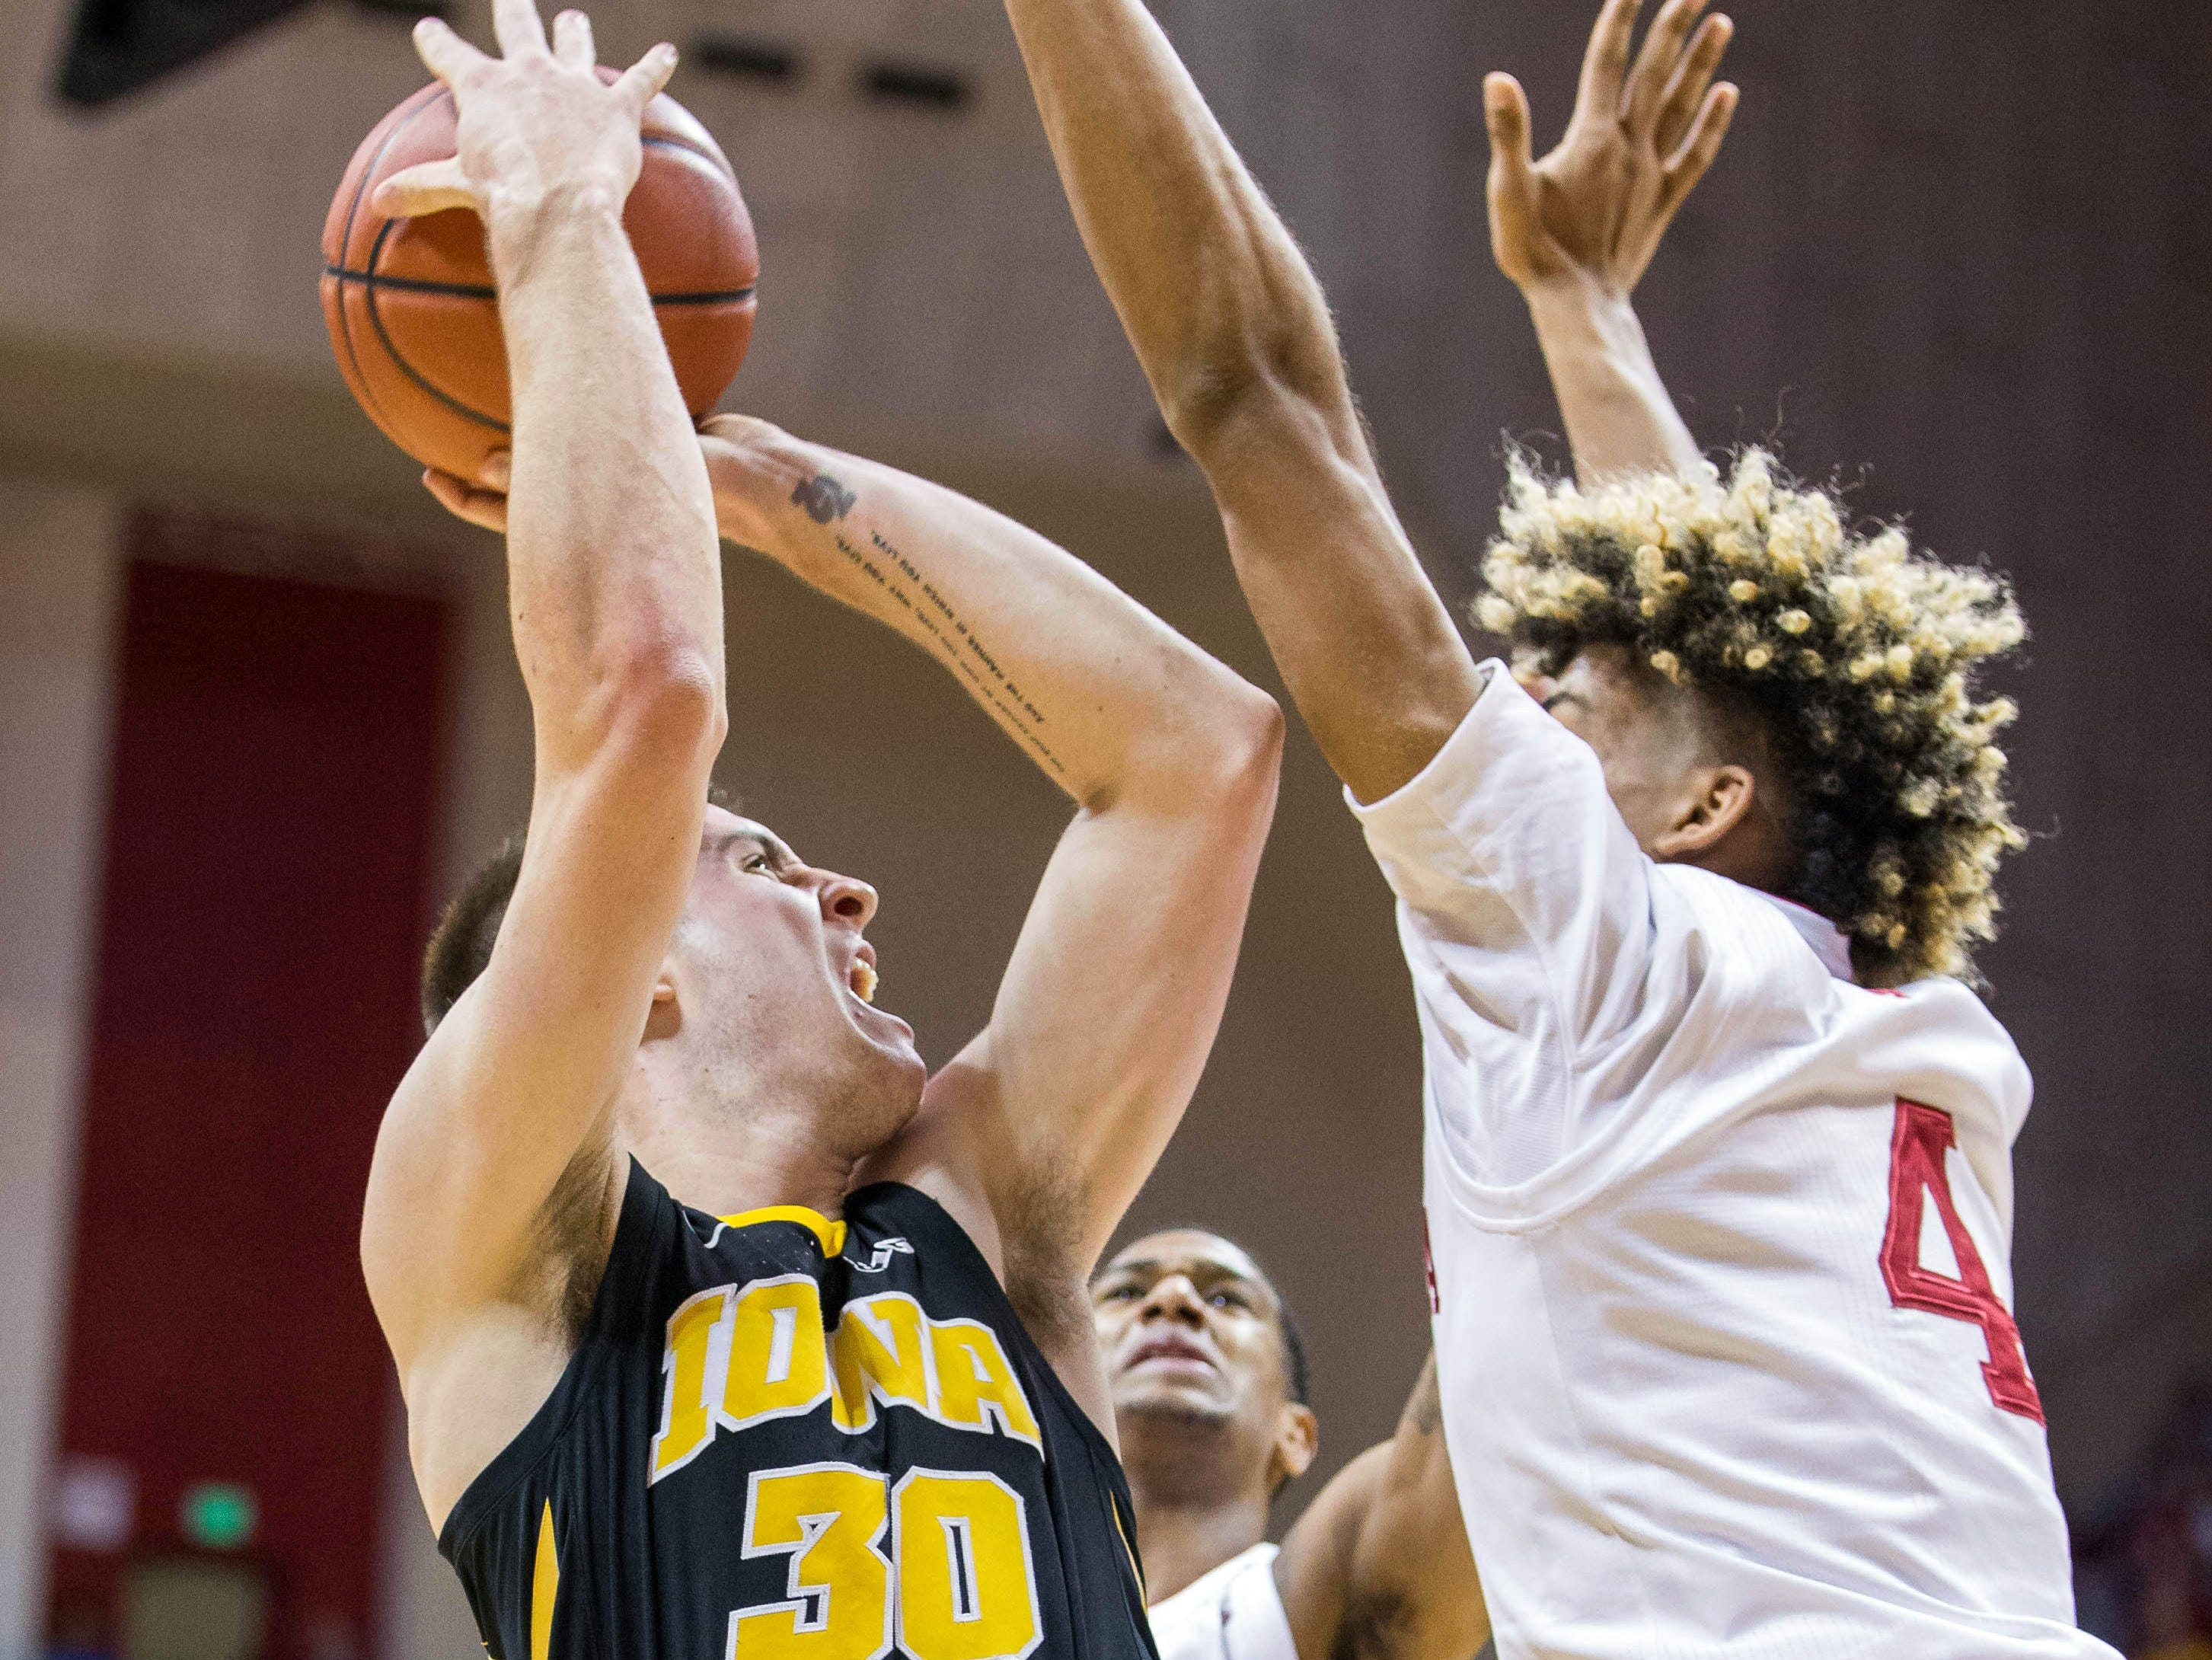 Iowa Hawkeyes guard Connor McCaffery (30) shoots the ball while Indiana Hoosiers forward Jake Forrester (4) defends in the second half at Assembly Hall. Mandatory Credit: Trevor Ruszkowski-USA TODAY Sports